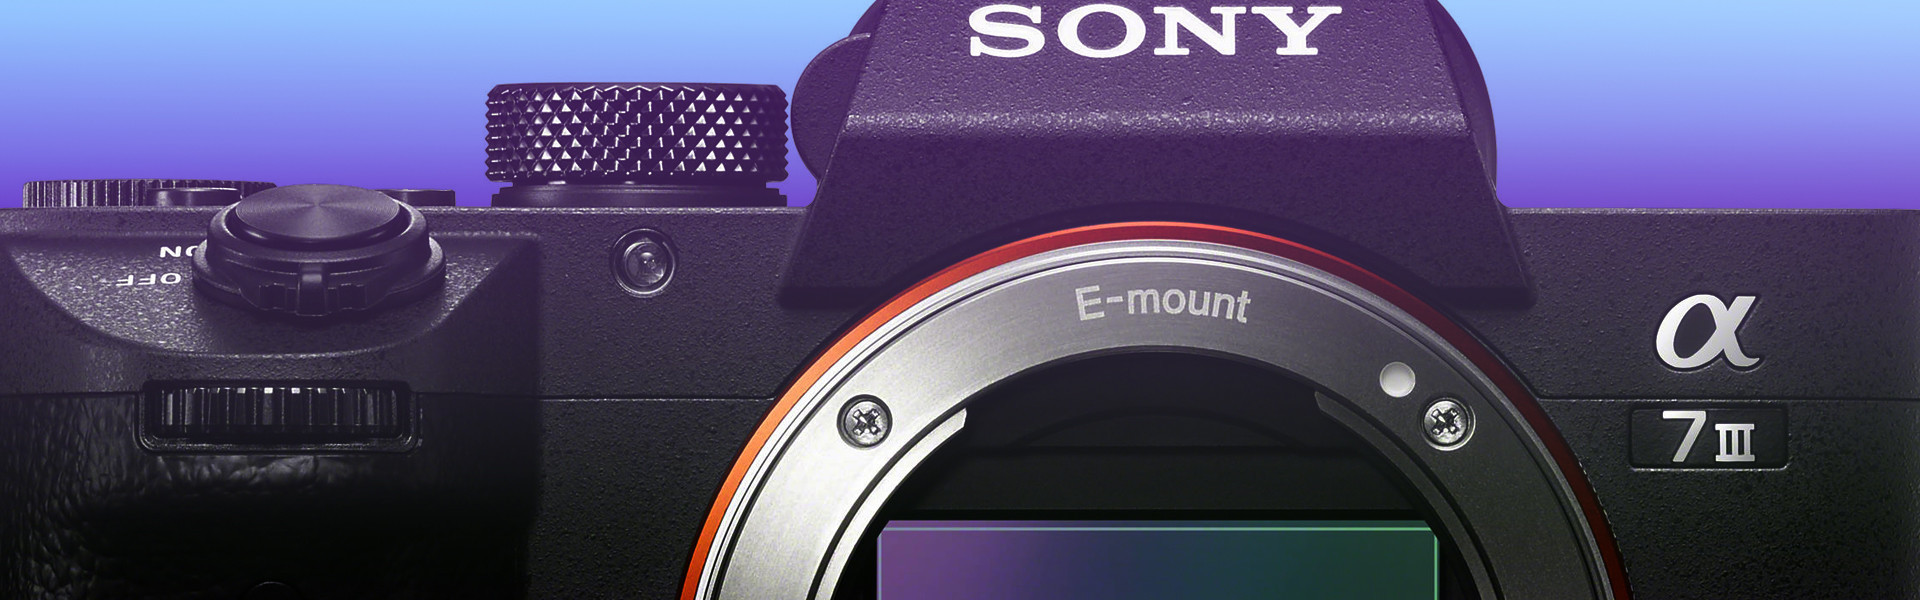 Header image for article Sony a7 III Camera Lens & Accessory Guide